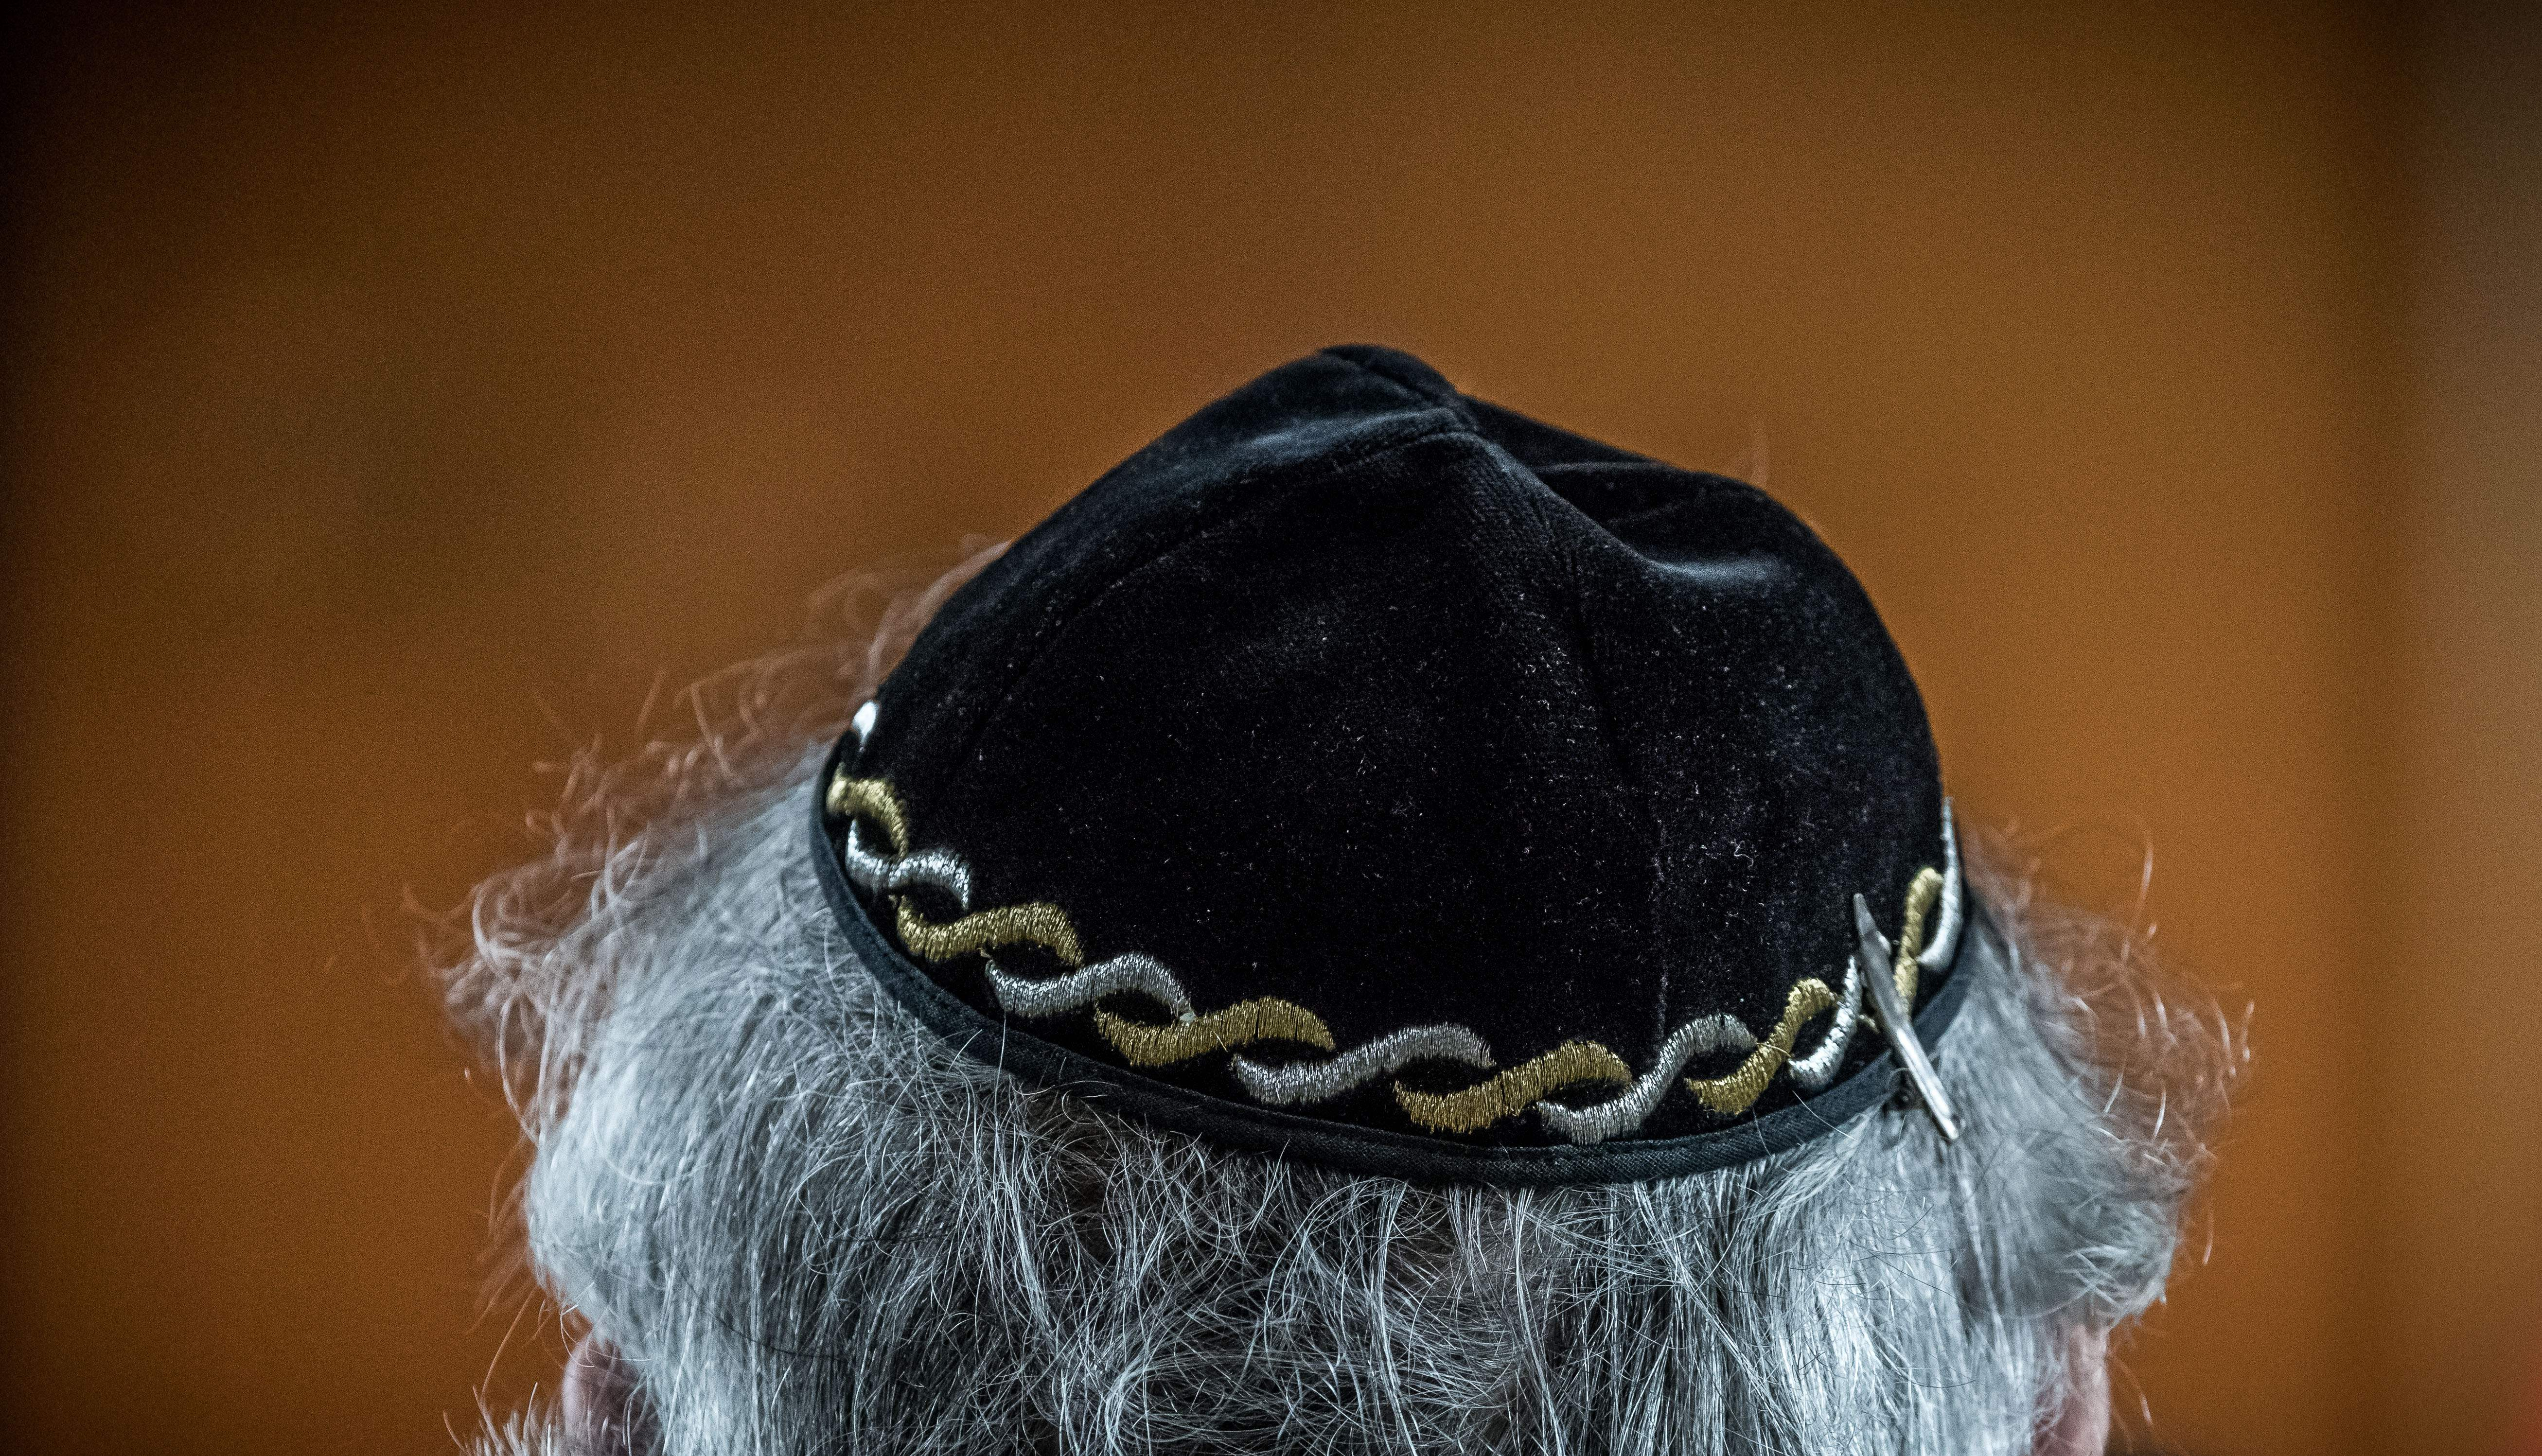 A Jewish man wears a kippa, or Jewish religious skull cap, during a meeting on  the German and French perspectives on immigration, integration and identity  organized by the American Jewish Committee (AJC) in Berlin on April 24, 2018.